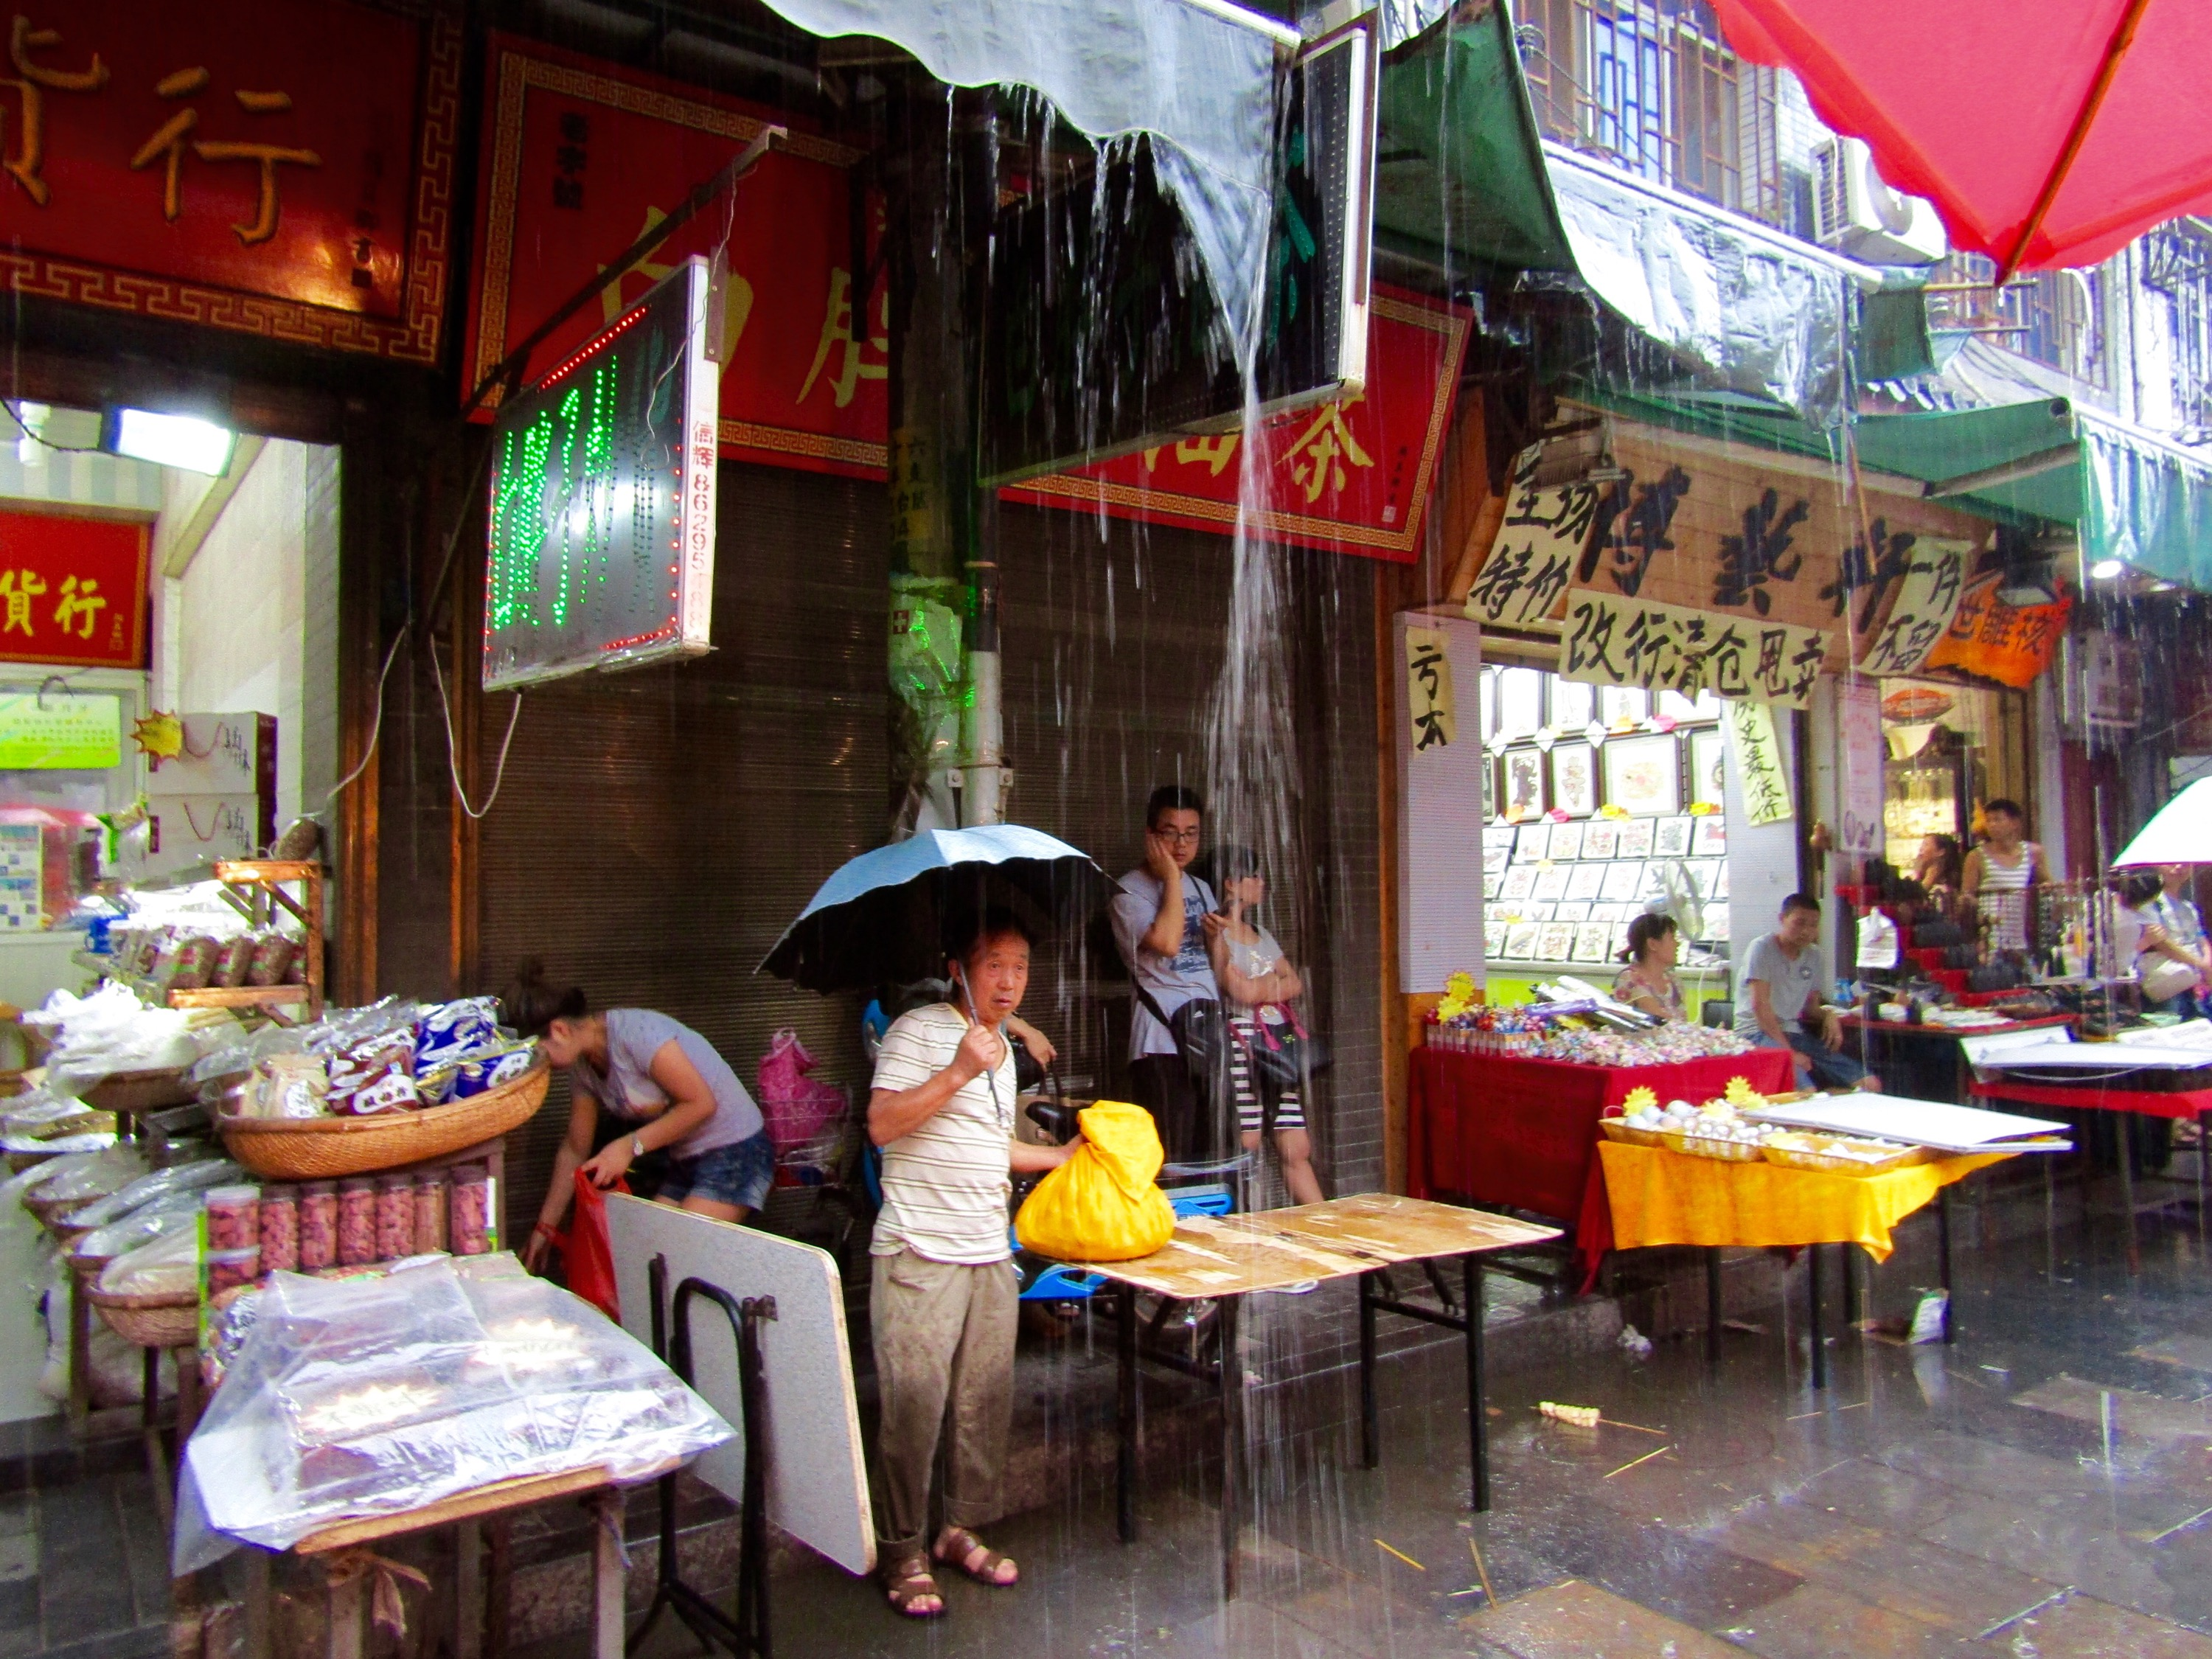 Our time in the Muslim Quarter was cut short by a freak rainstorm that sent everyone scurrying for cover. on our rain-soaked walk back to the hotel, we picked up dinner from various local food stalls... a great way to get to know the local culture.